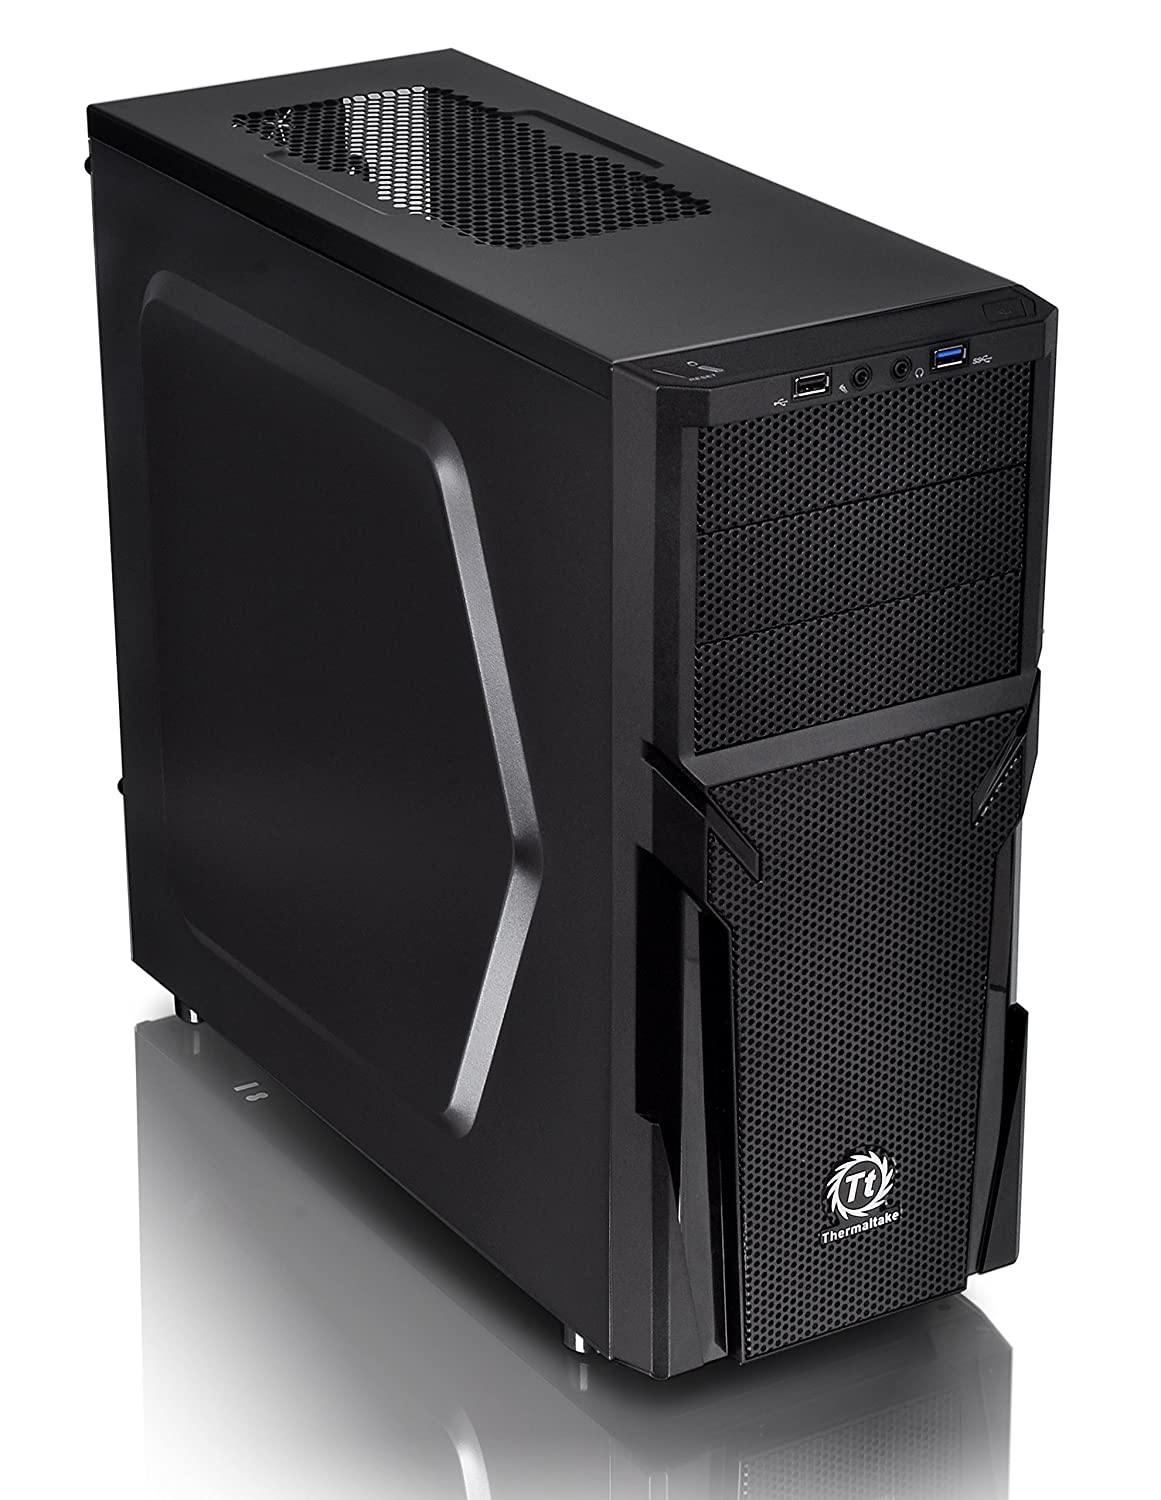 Thermaltake Versa H21 SPCC ATX Mid Tower Computer Chassis CA-1B2-00M1NN-00 Thermaltake USA Direct